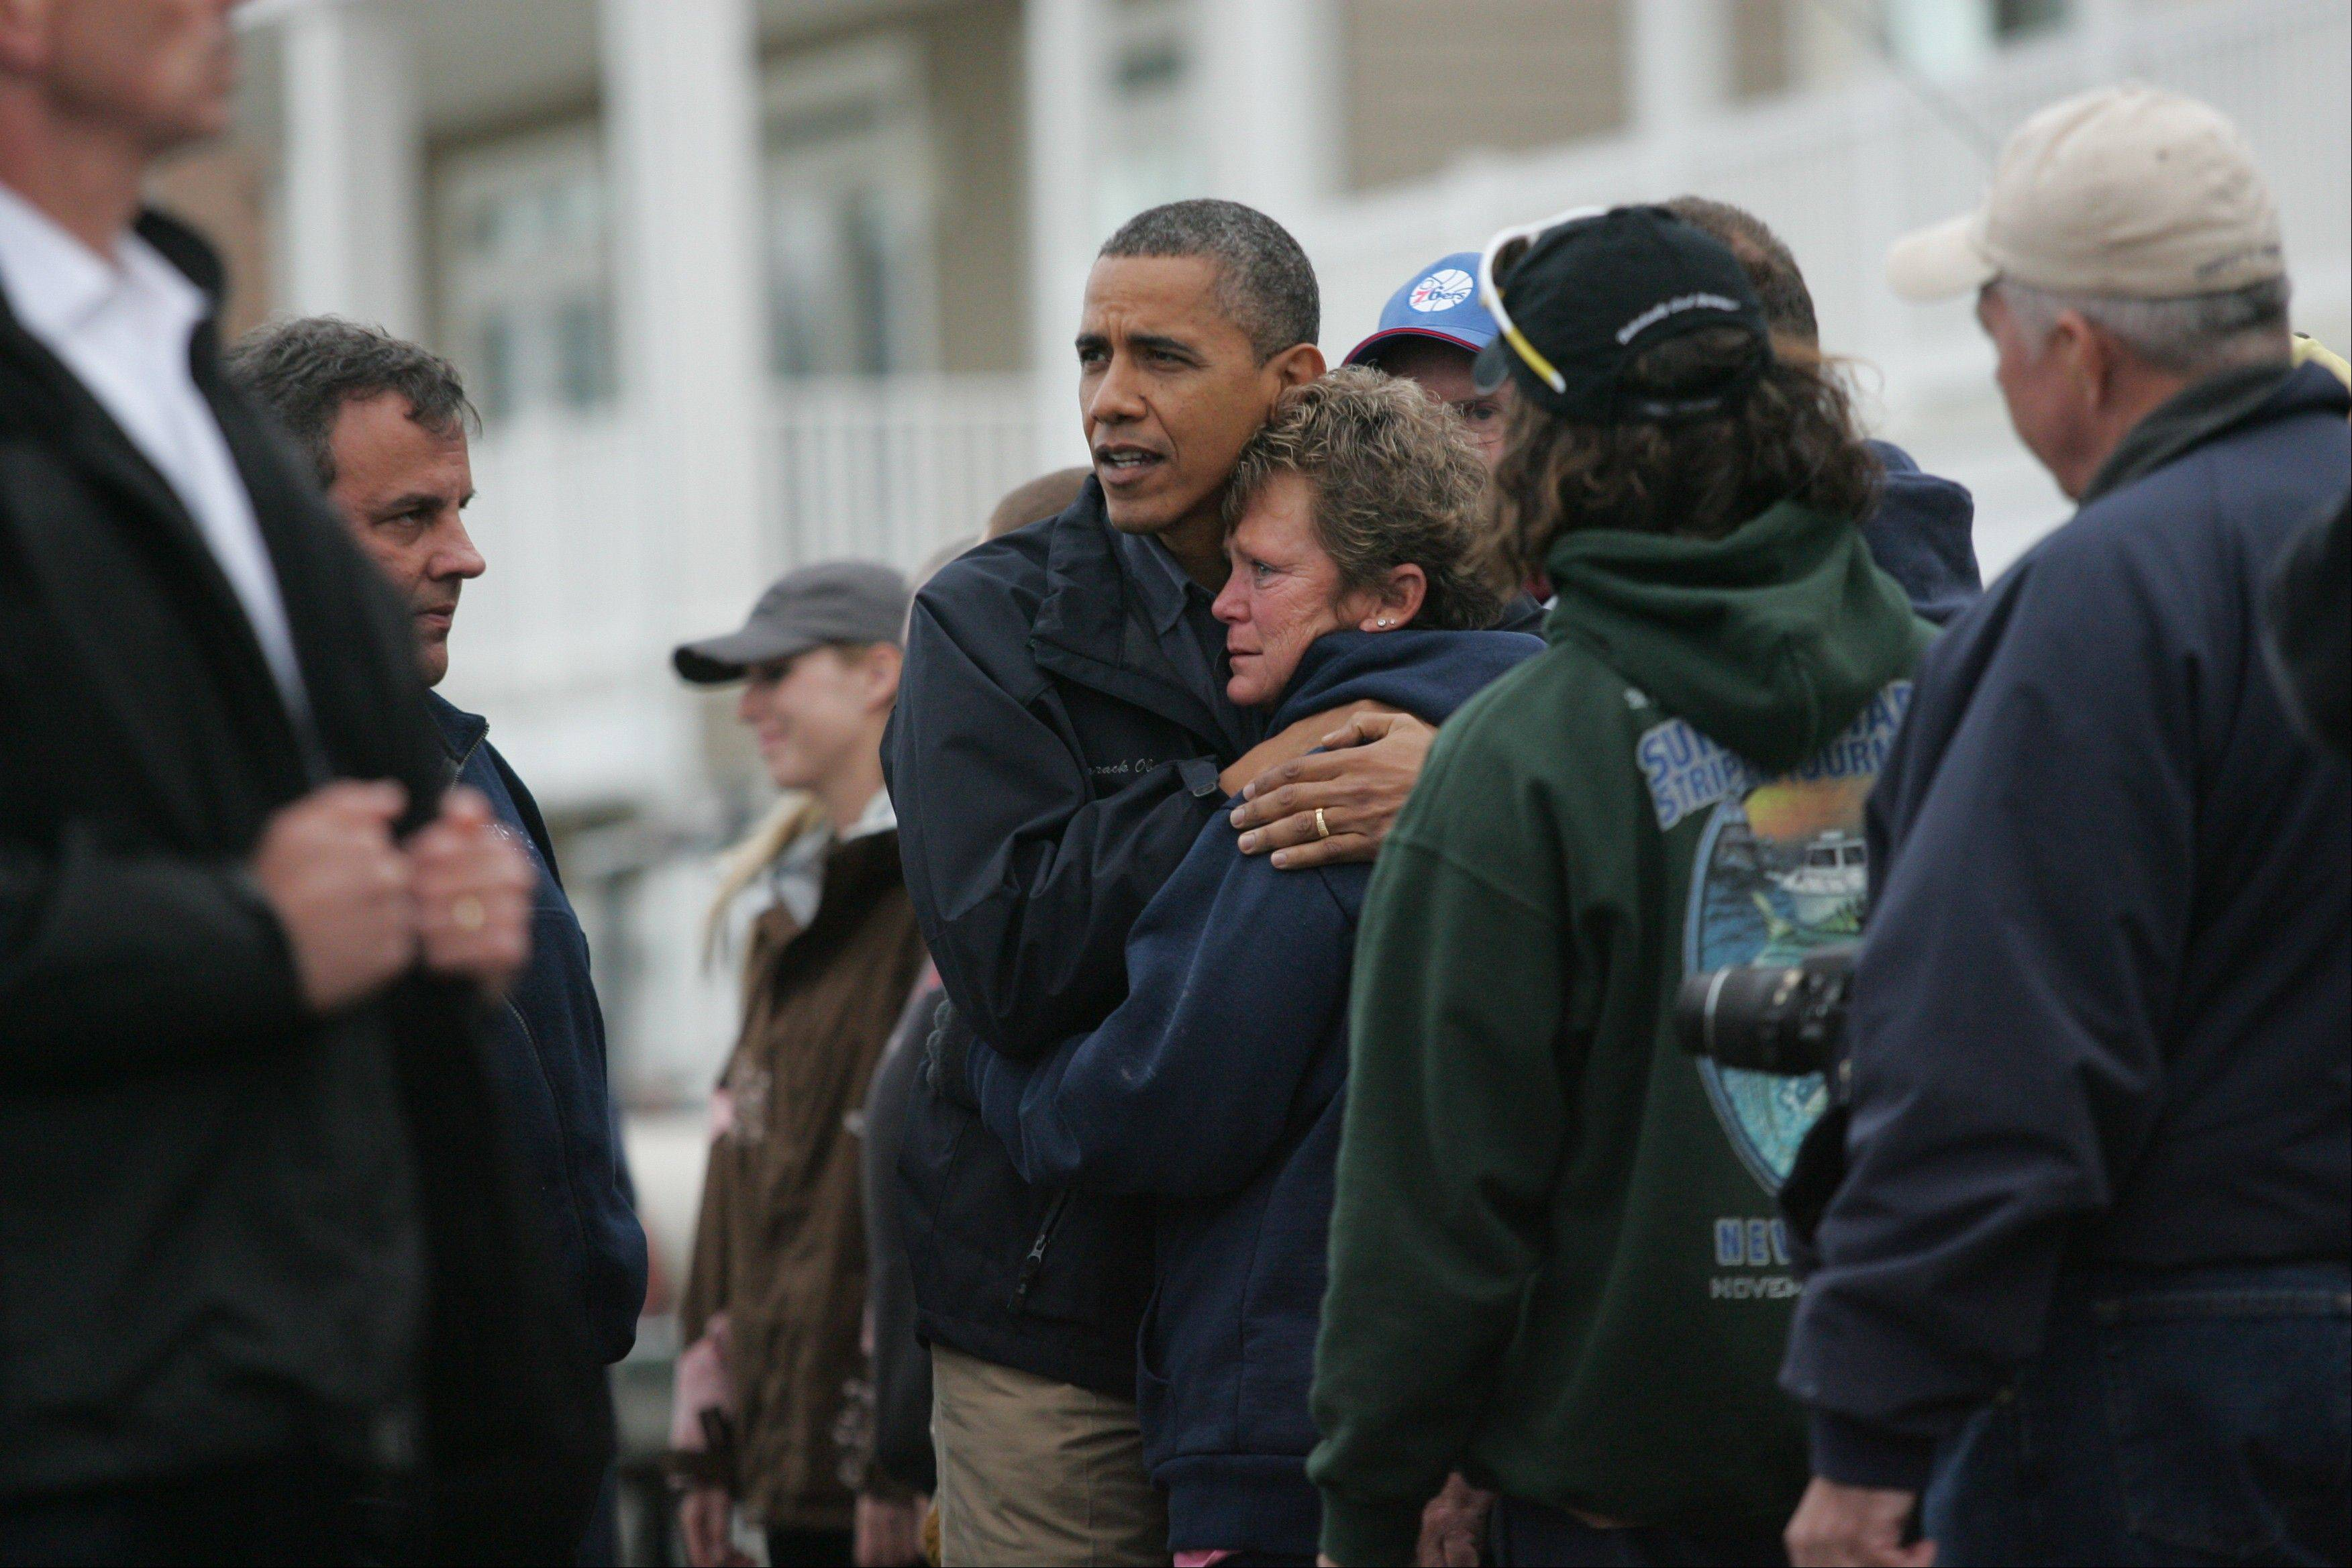 President Barack Obama embraces Donna Vanzant during a tour of a neighborhood affected by superstorm Sandy on Wednesday in Brigantine, N.J. Vanzant is a owner of North Point Marina, which was damaged by the storm.